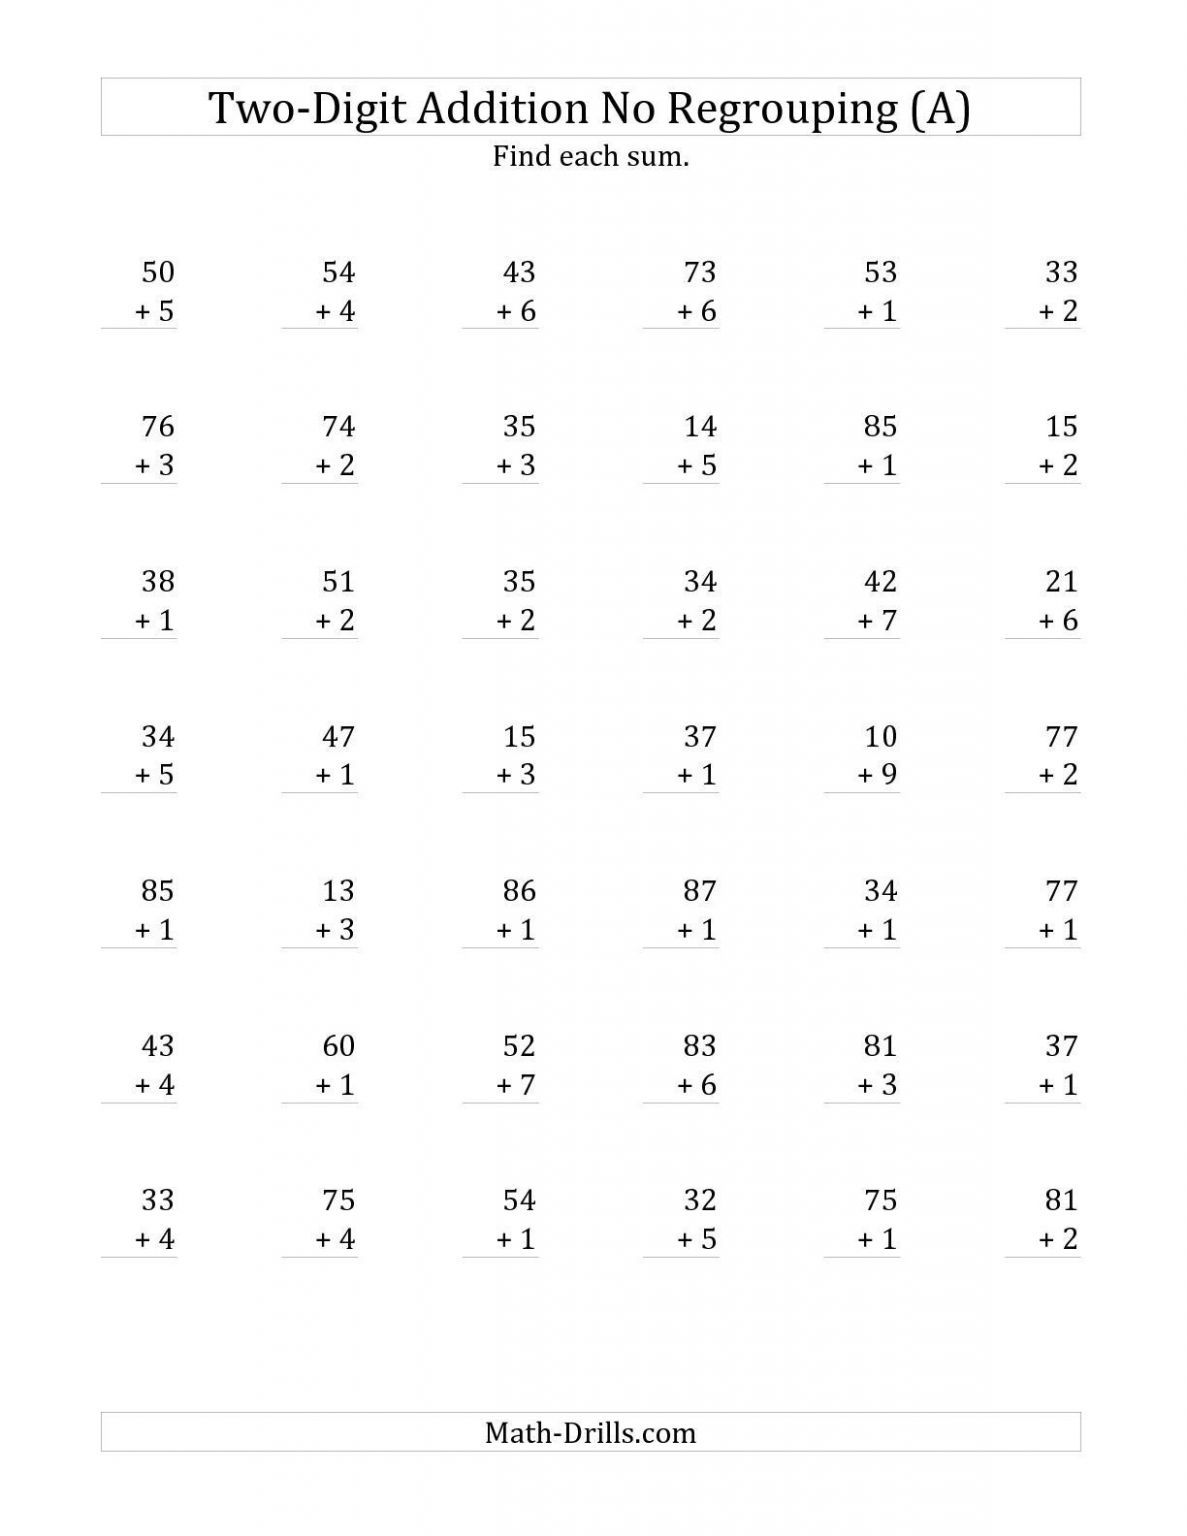 5 Free Math Worksheets First Grade 1 Subtraction Subtracting From Whole Ten Apocalomegaproducti Addition Worksheets Math Fact Worksheets Free Math Worksheets